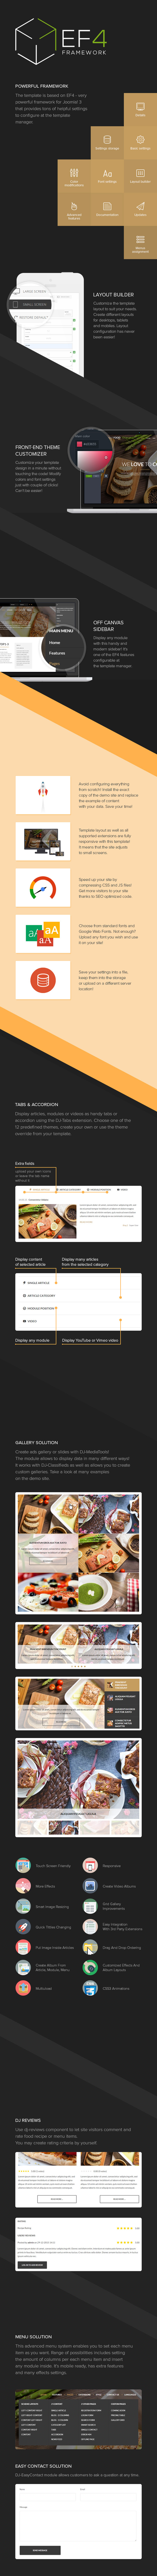 Restaurant ad food Joomla template by Joomla-Monster